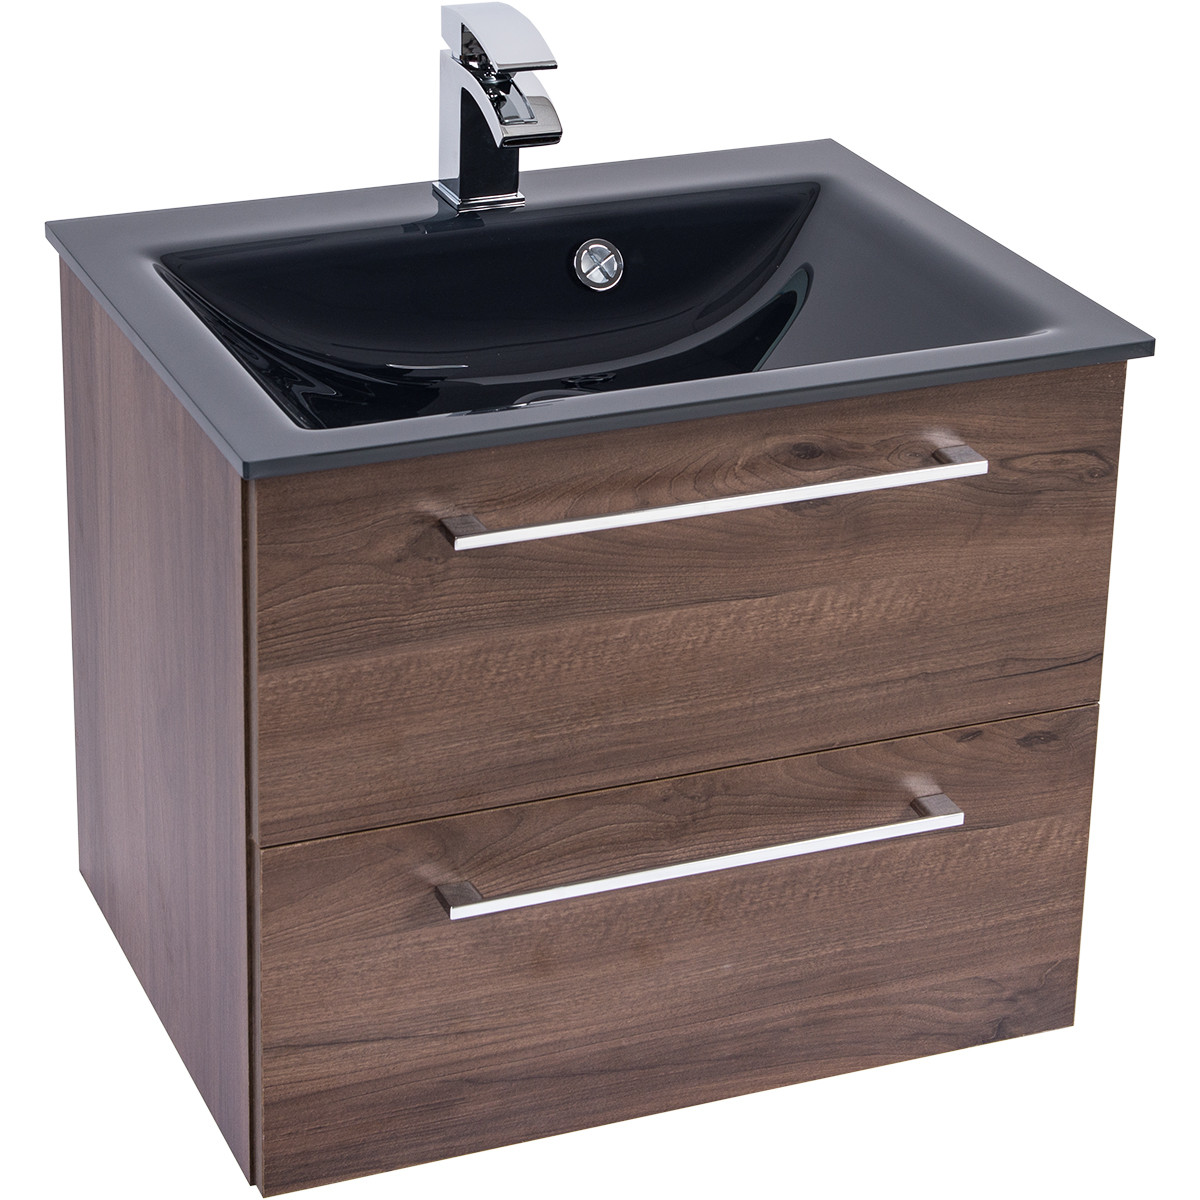 Venice Anthracite 600 Napoli Walnut 2 Drawer Wall Mounted Unit & Basin